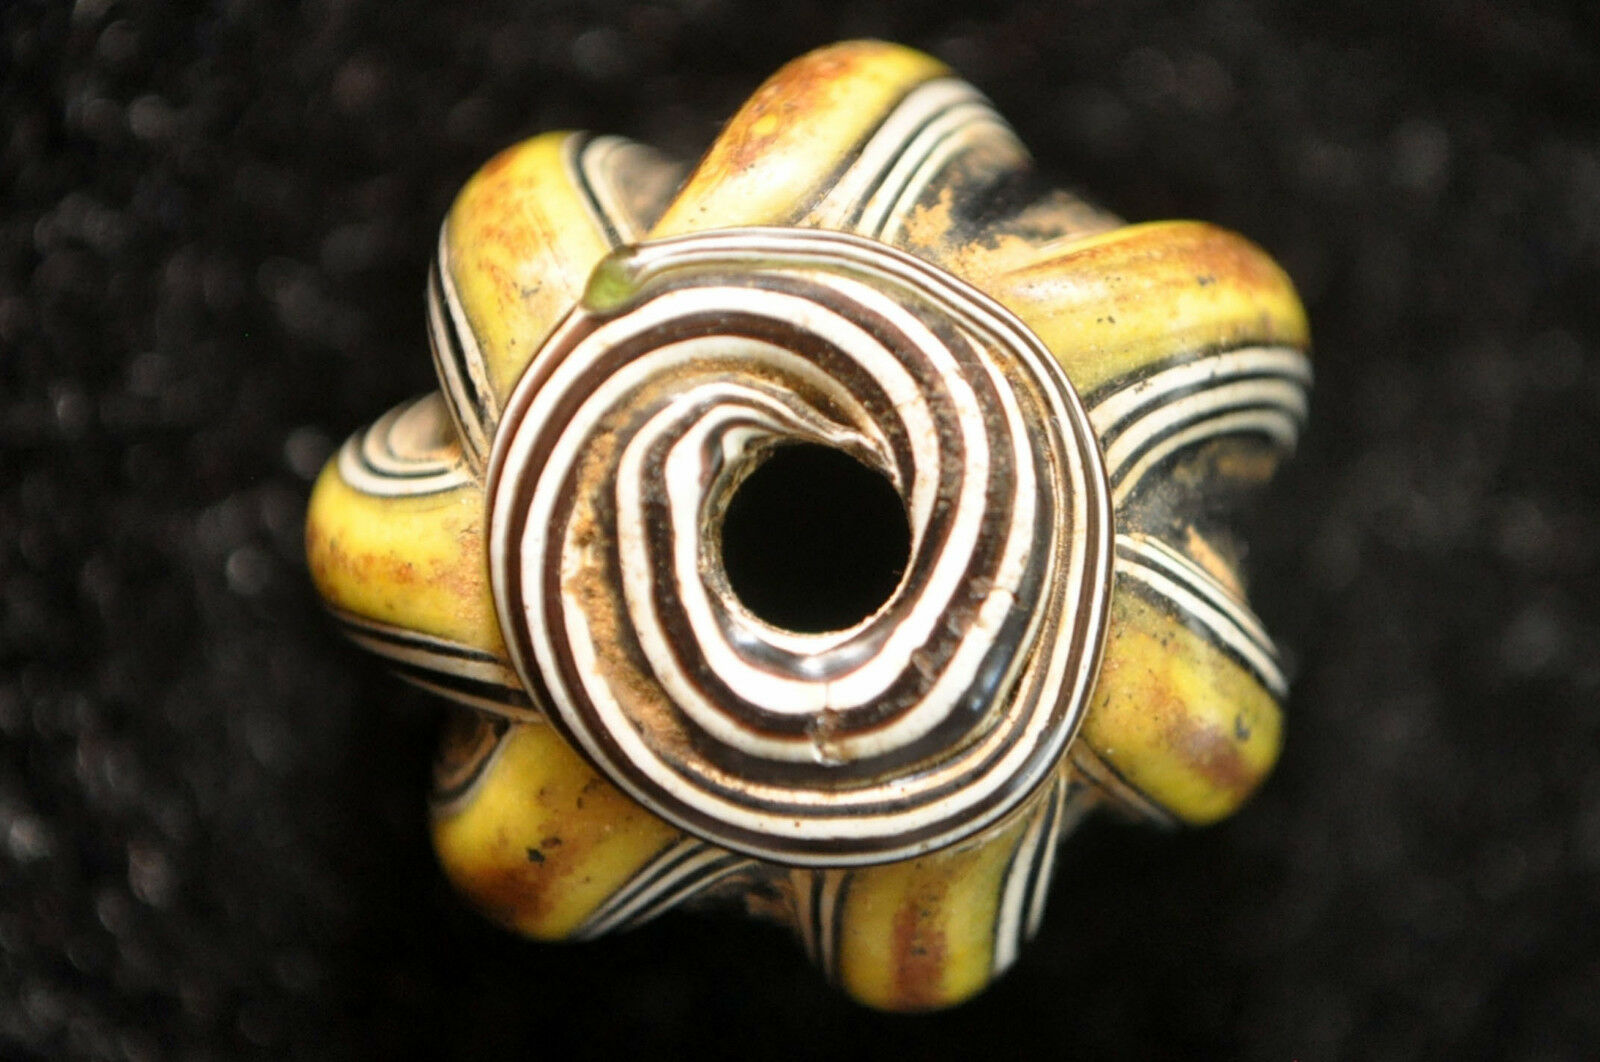 Rare Ancient Mosaic Glass Melon-Form Collared Bead  21mm Excellent Condition